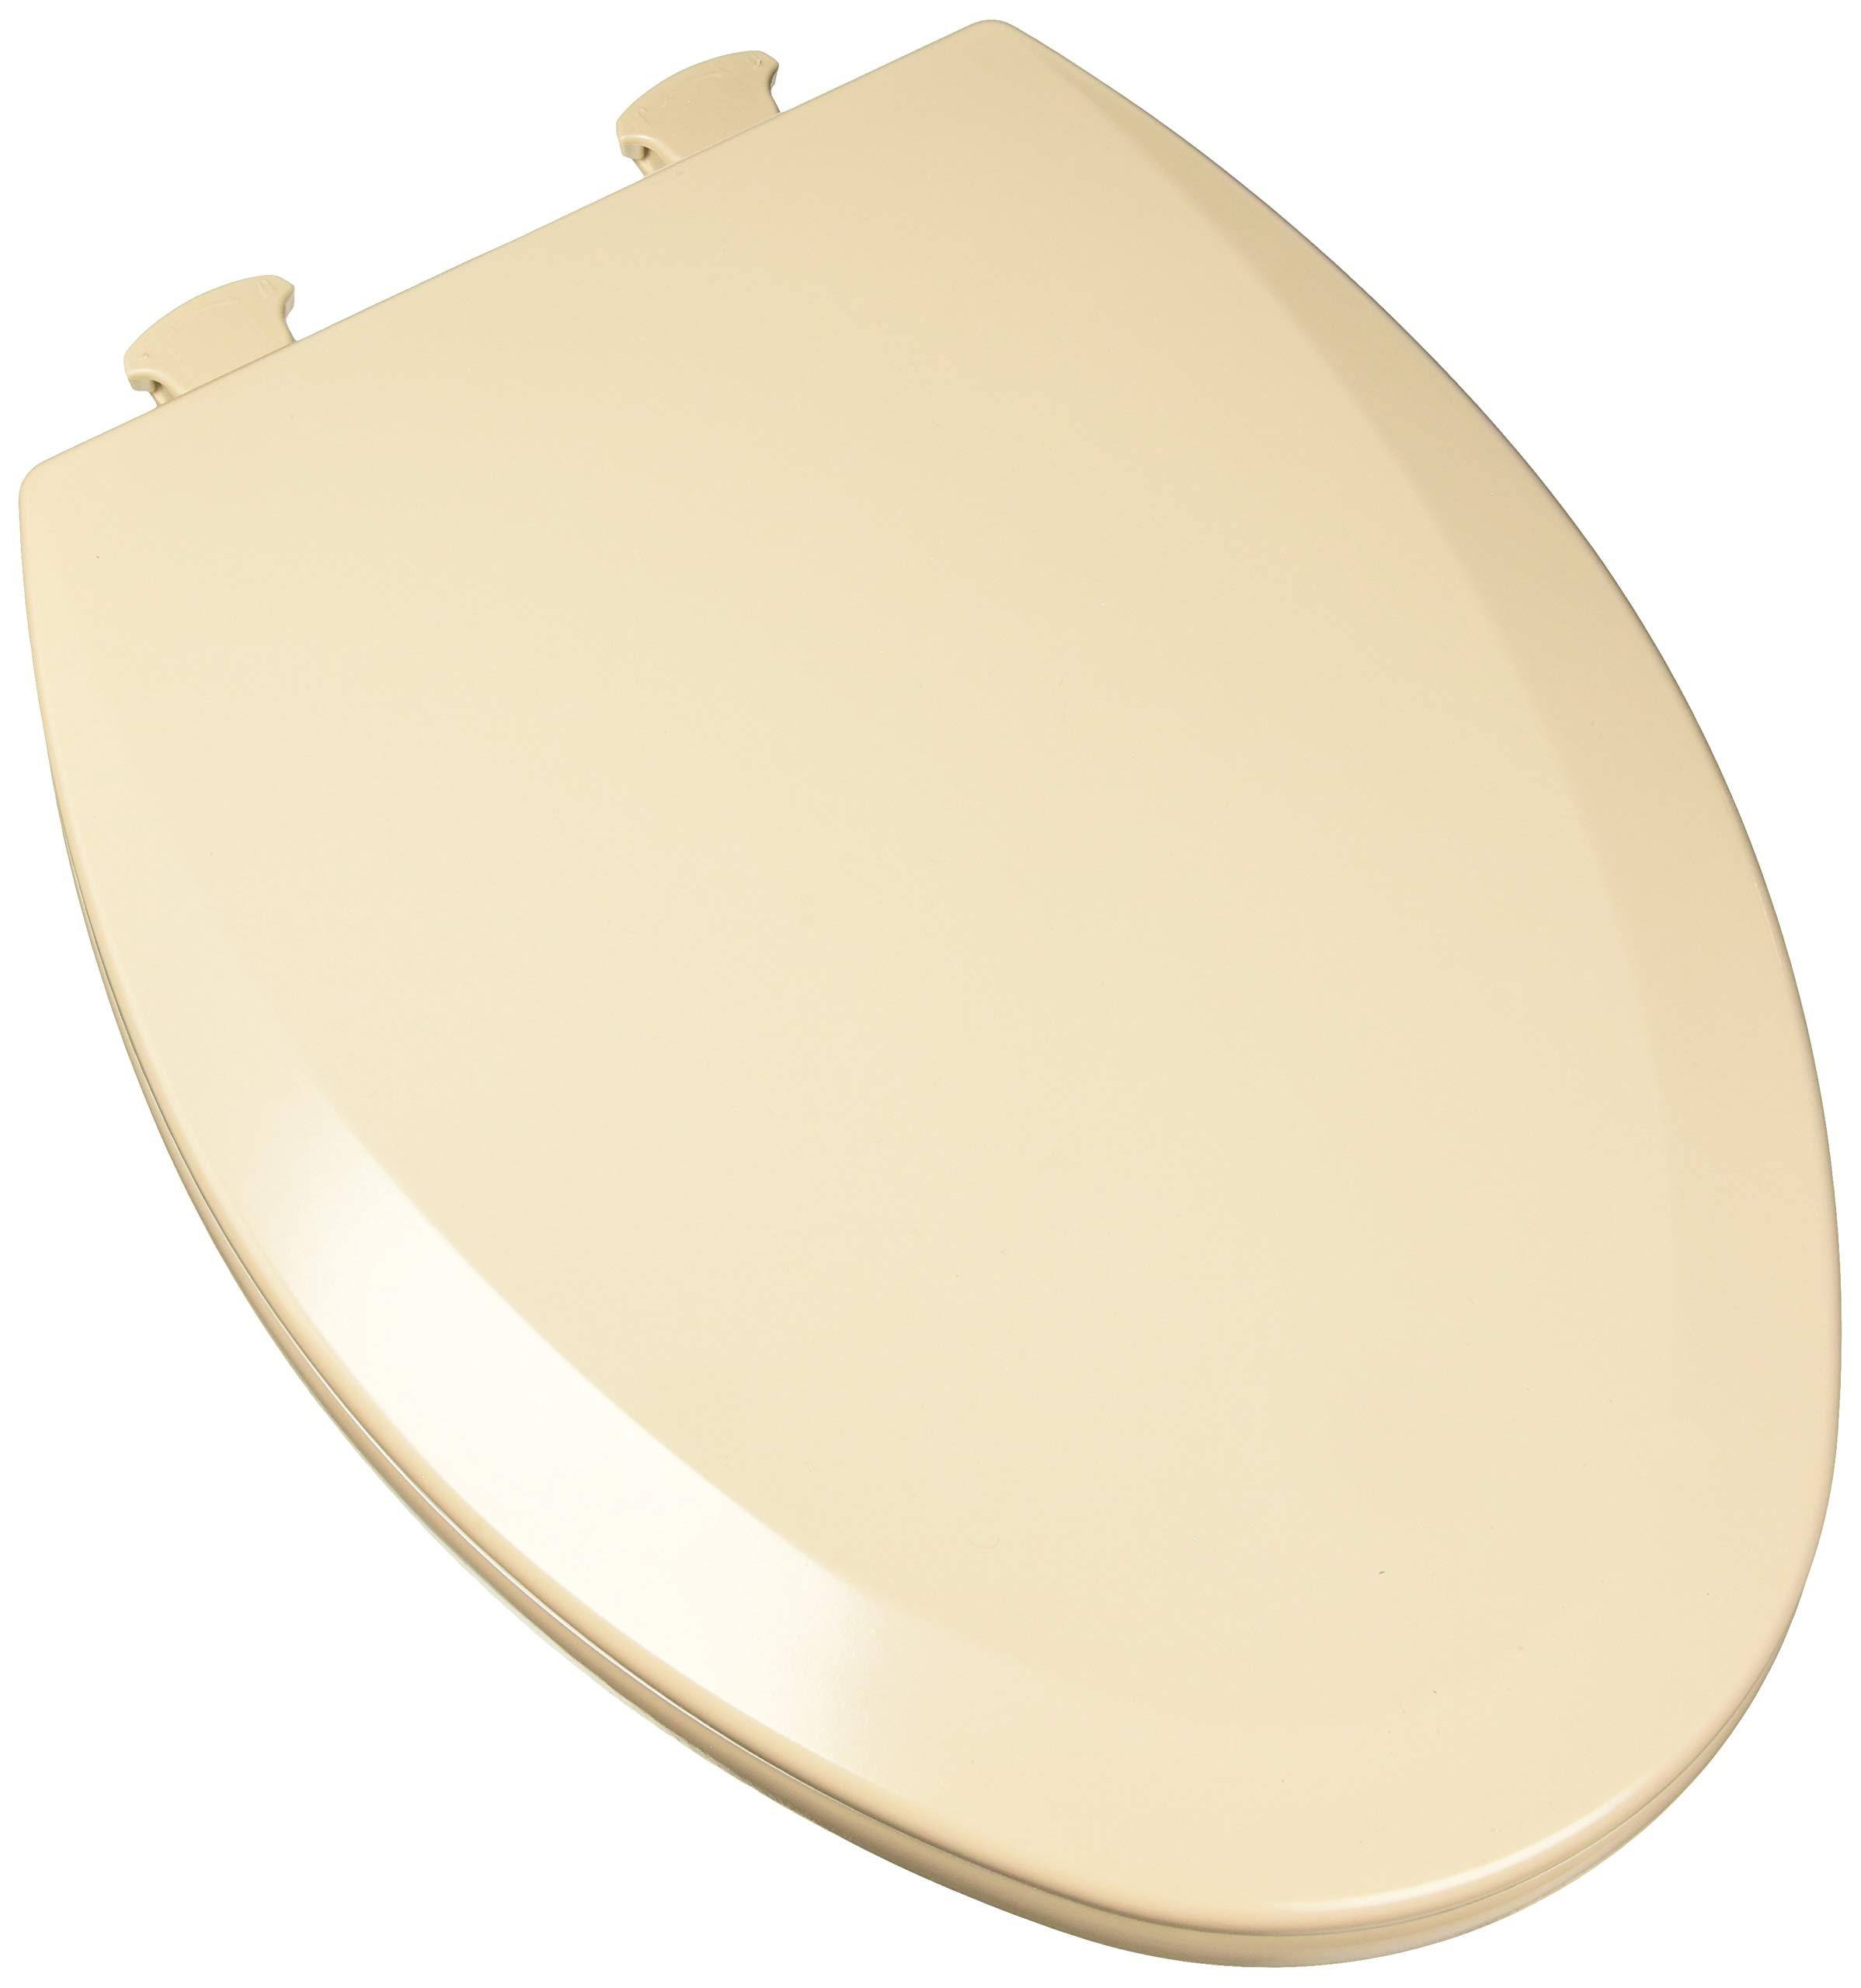 Bemis 1500EC068 Molded Wood Elongated Toilet Seat With Easy Clean and Change Hinge Fawn Beige